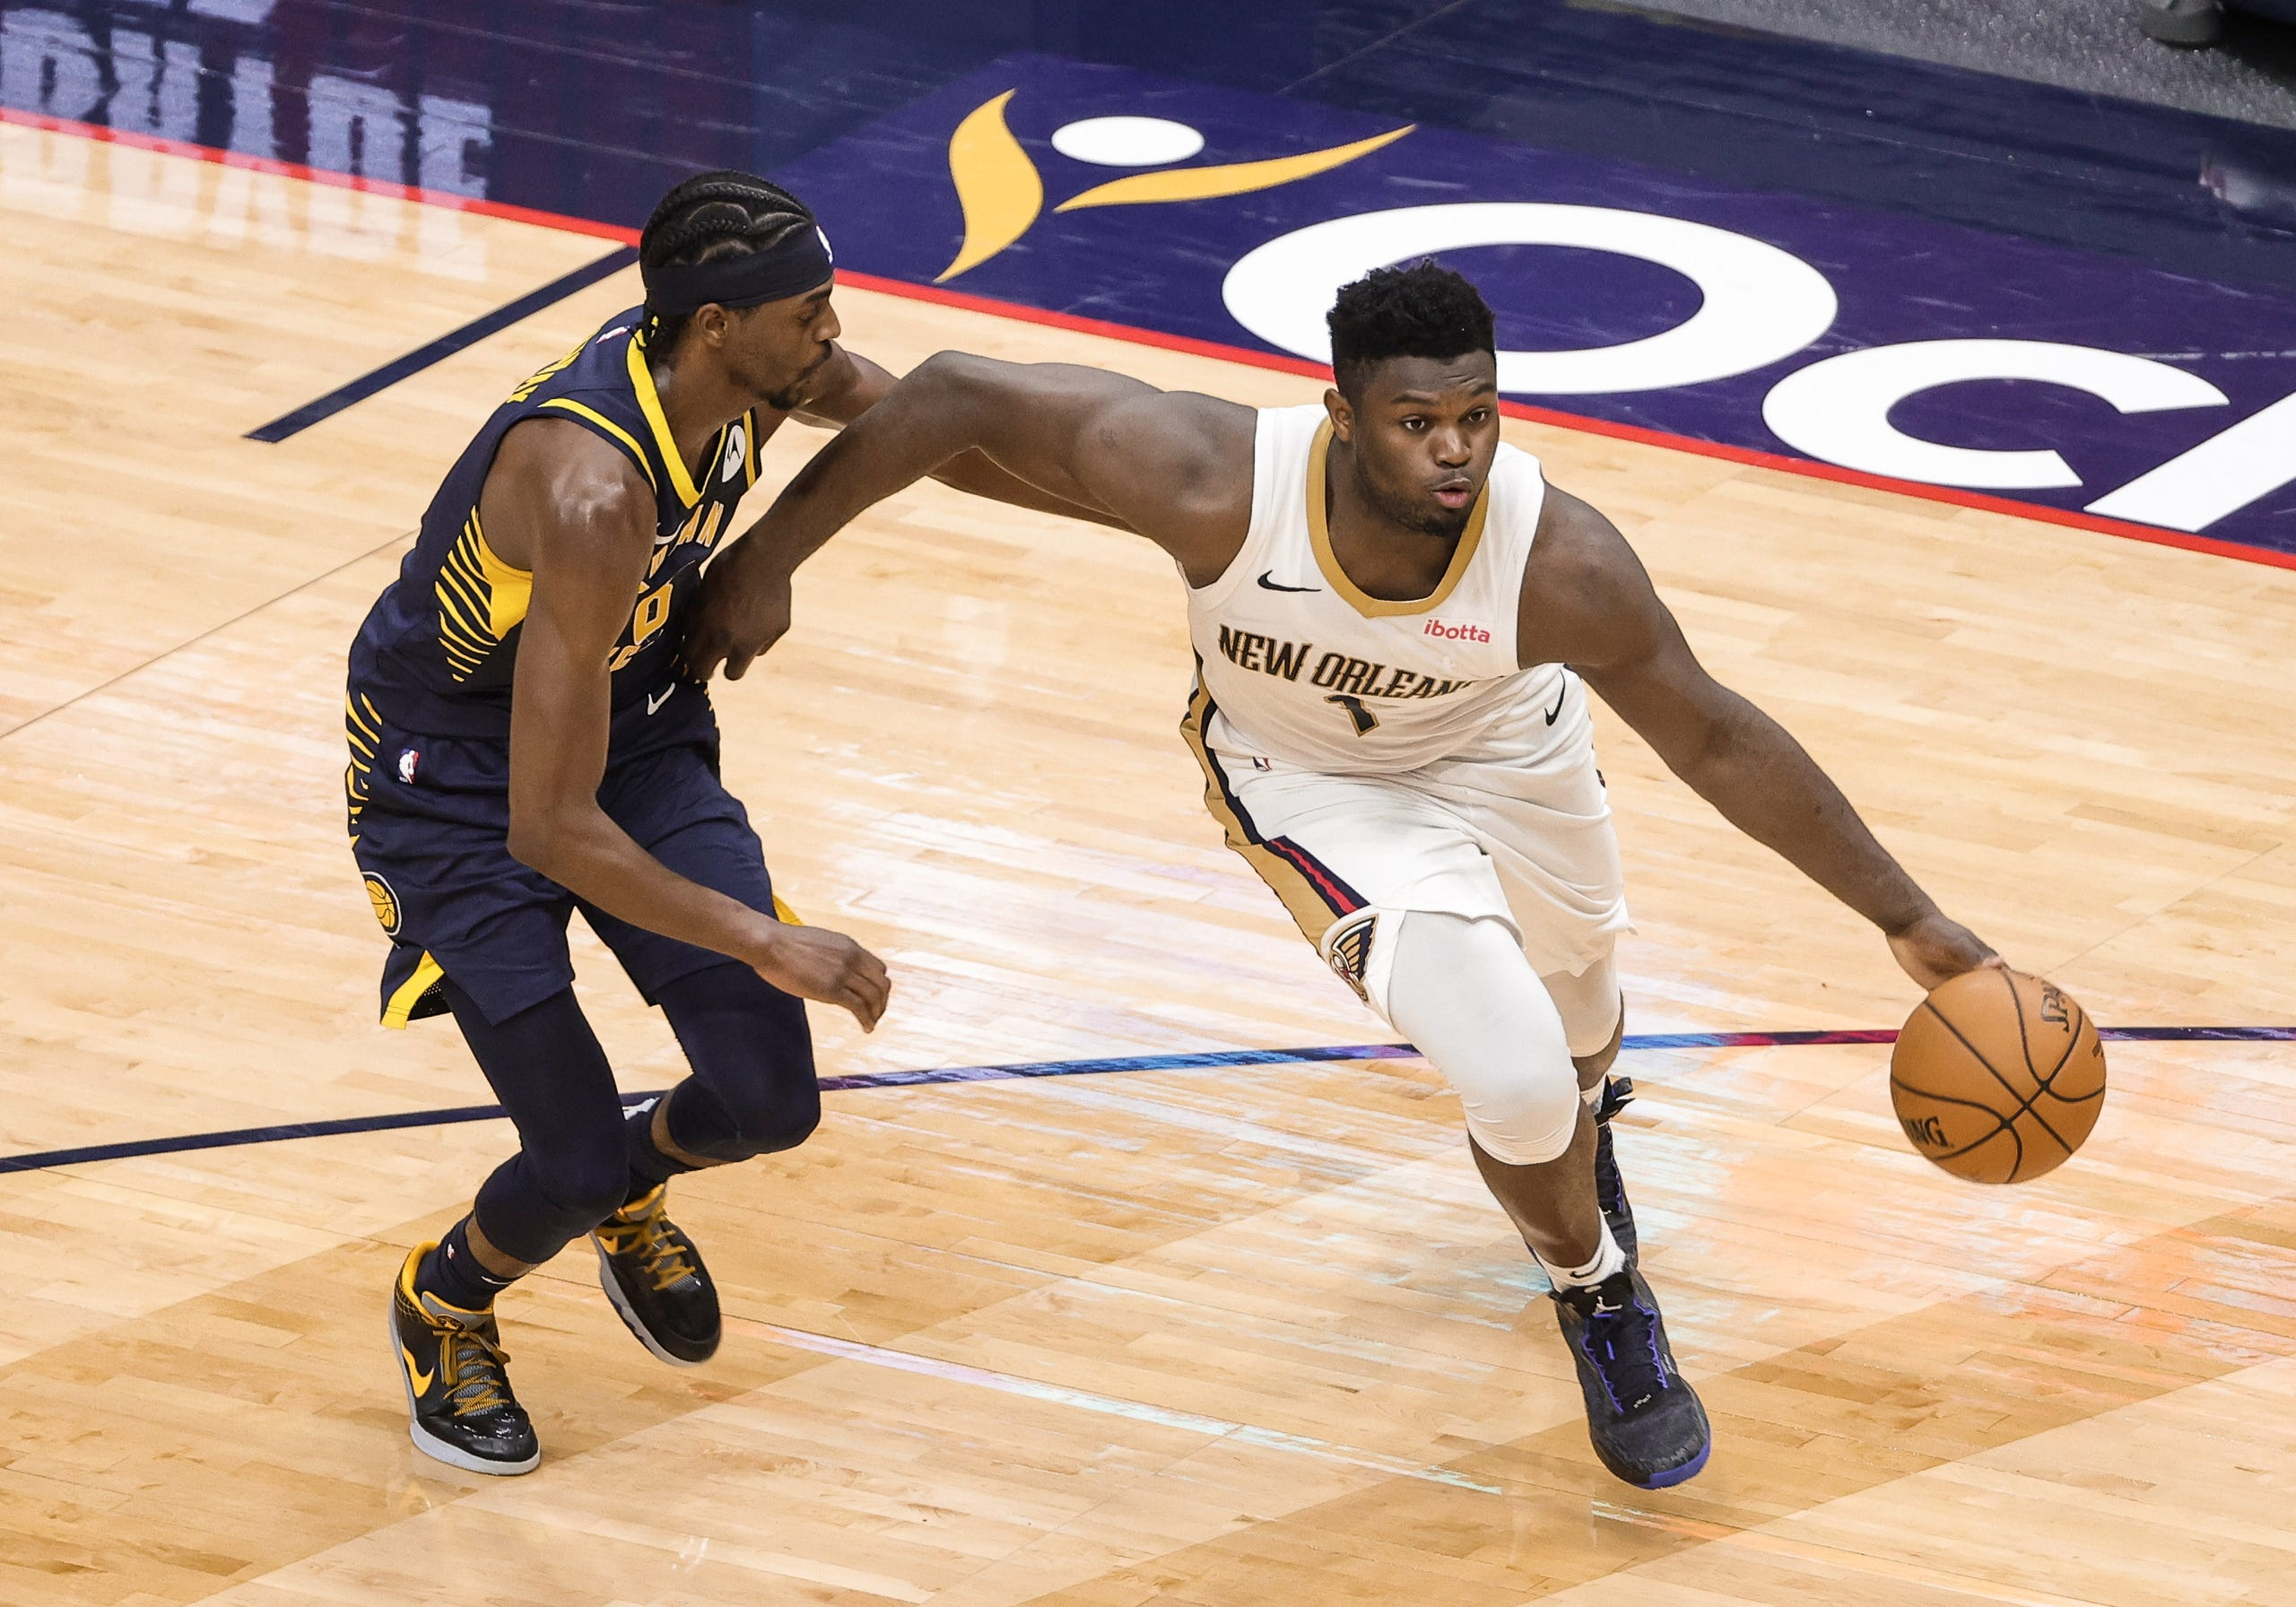 Pacers pelican game sport betting expert betting nba